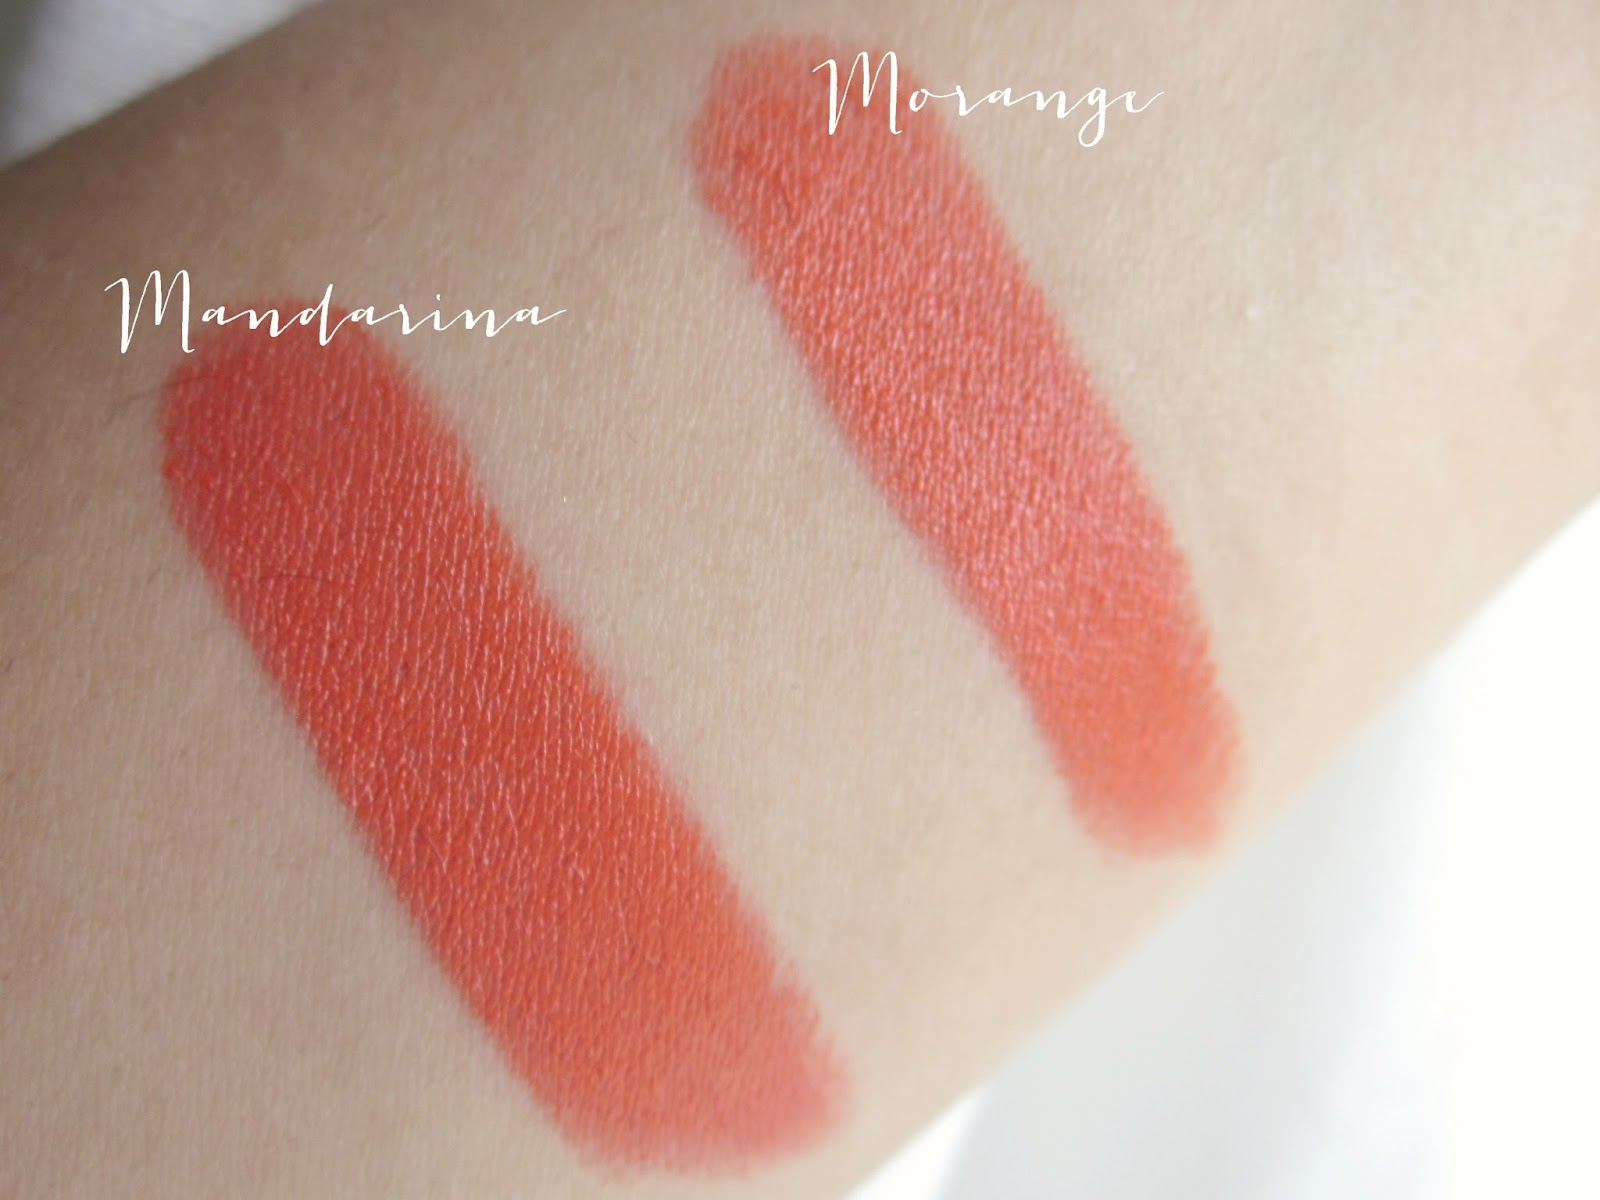 Bellapierre mandarina lipstick and MAC morange swatch